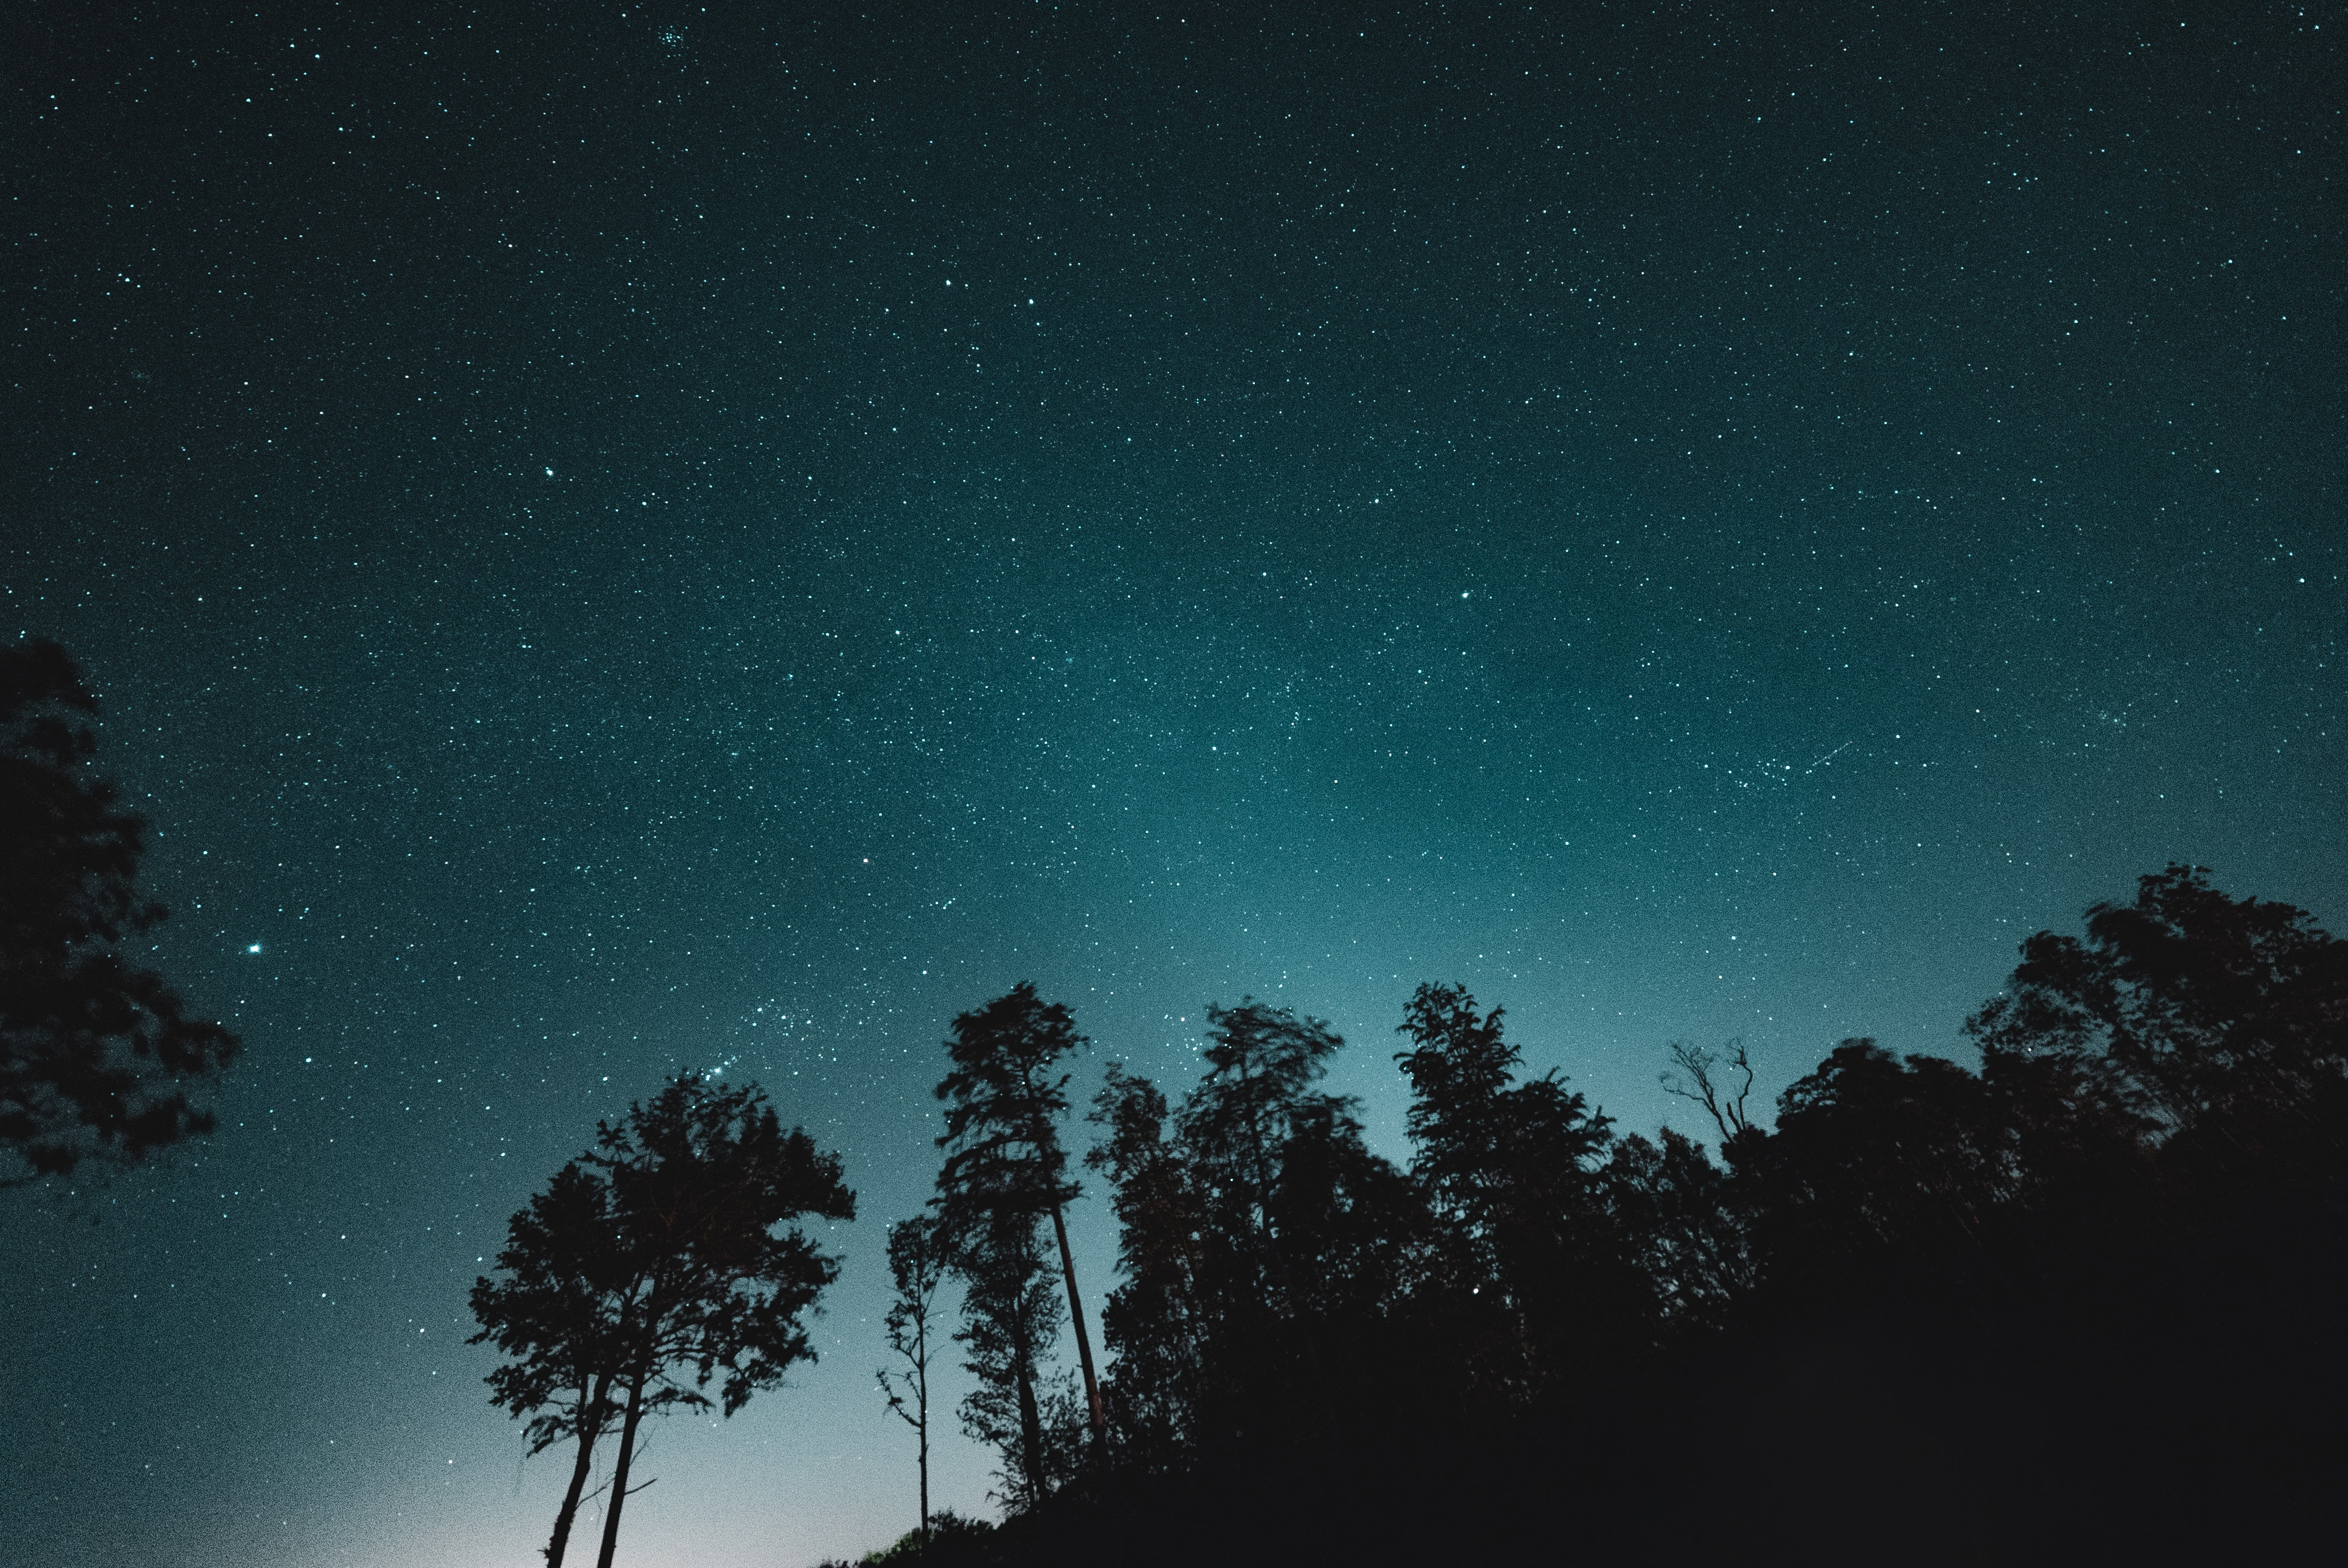 milky way over trees wallpaper